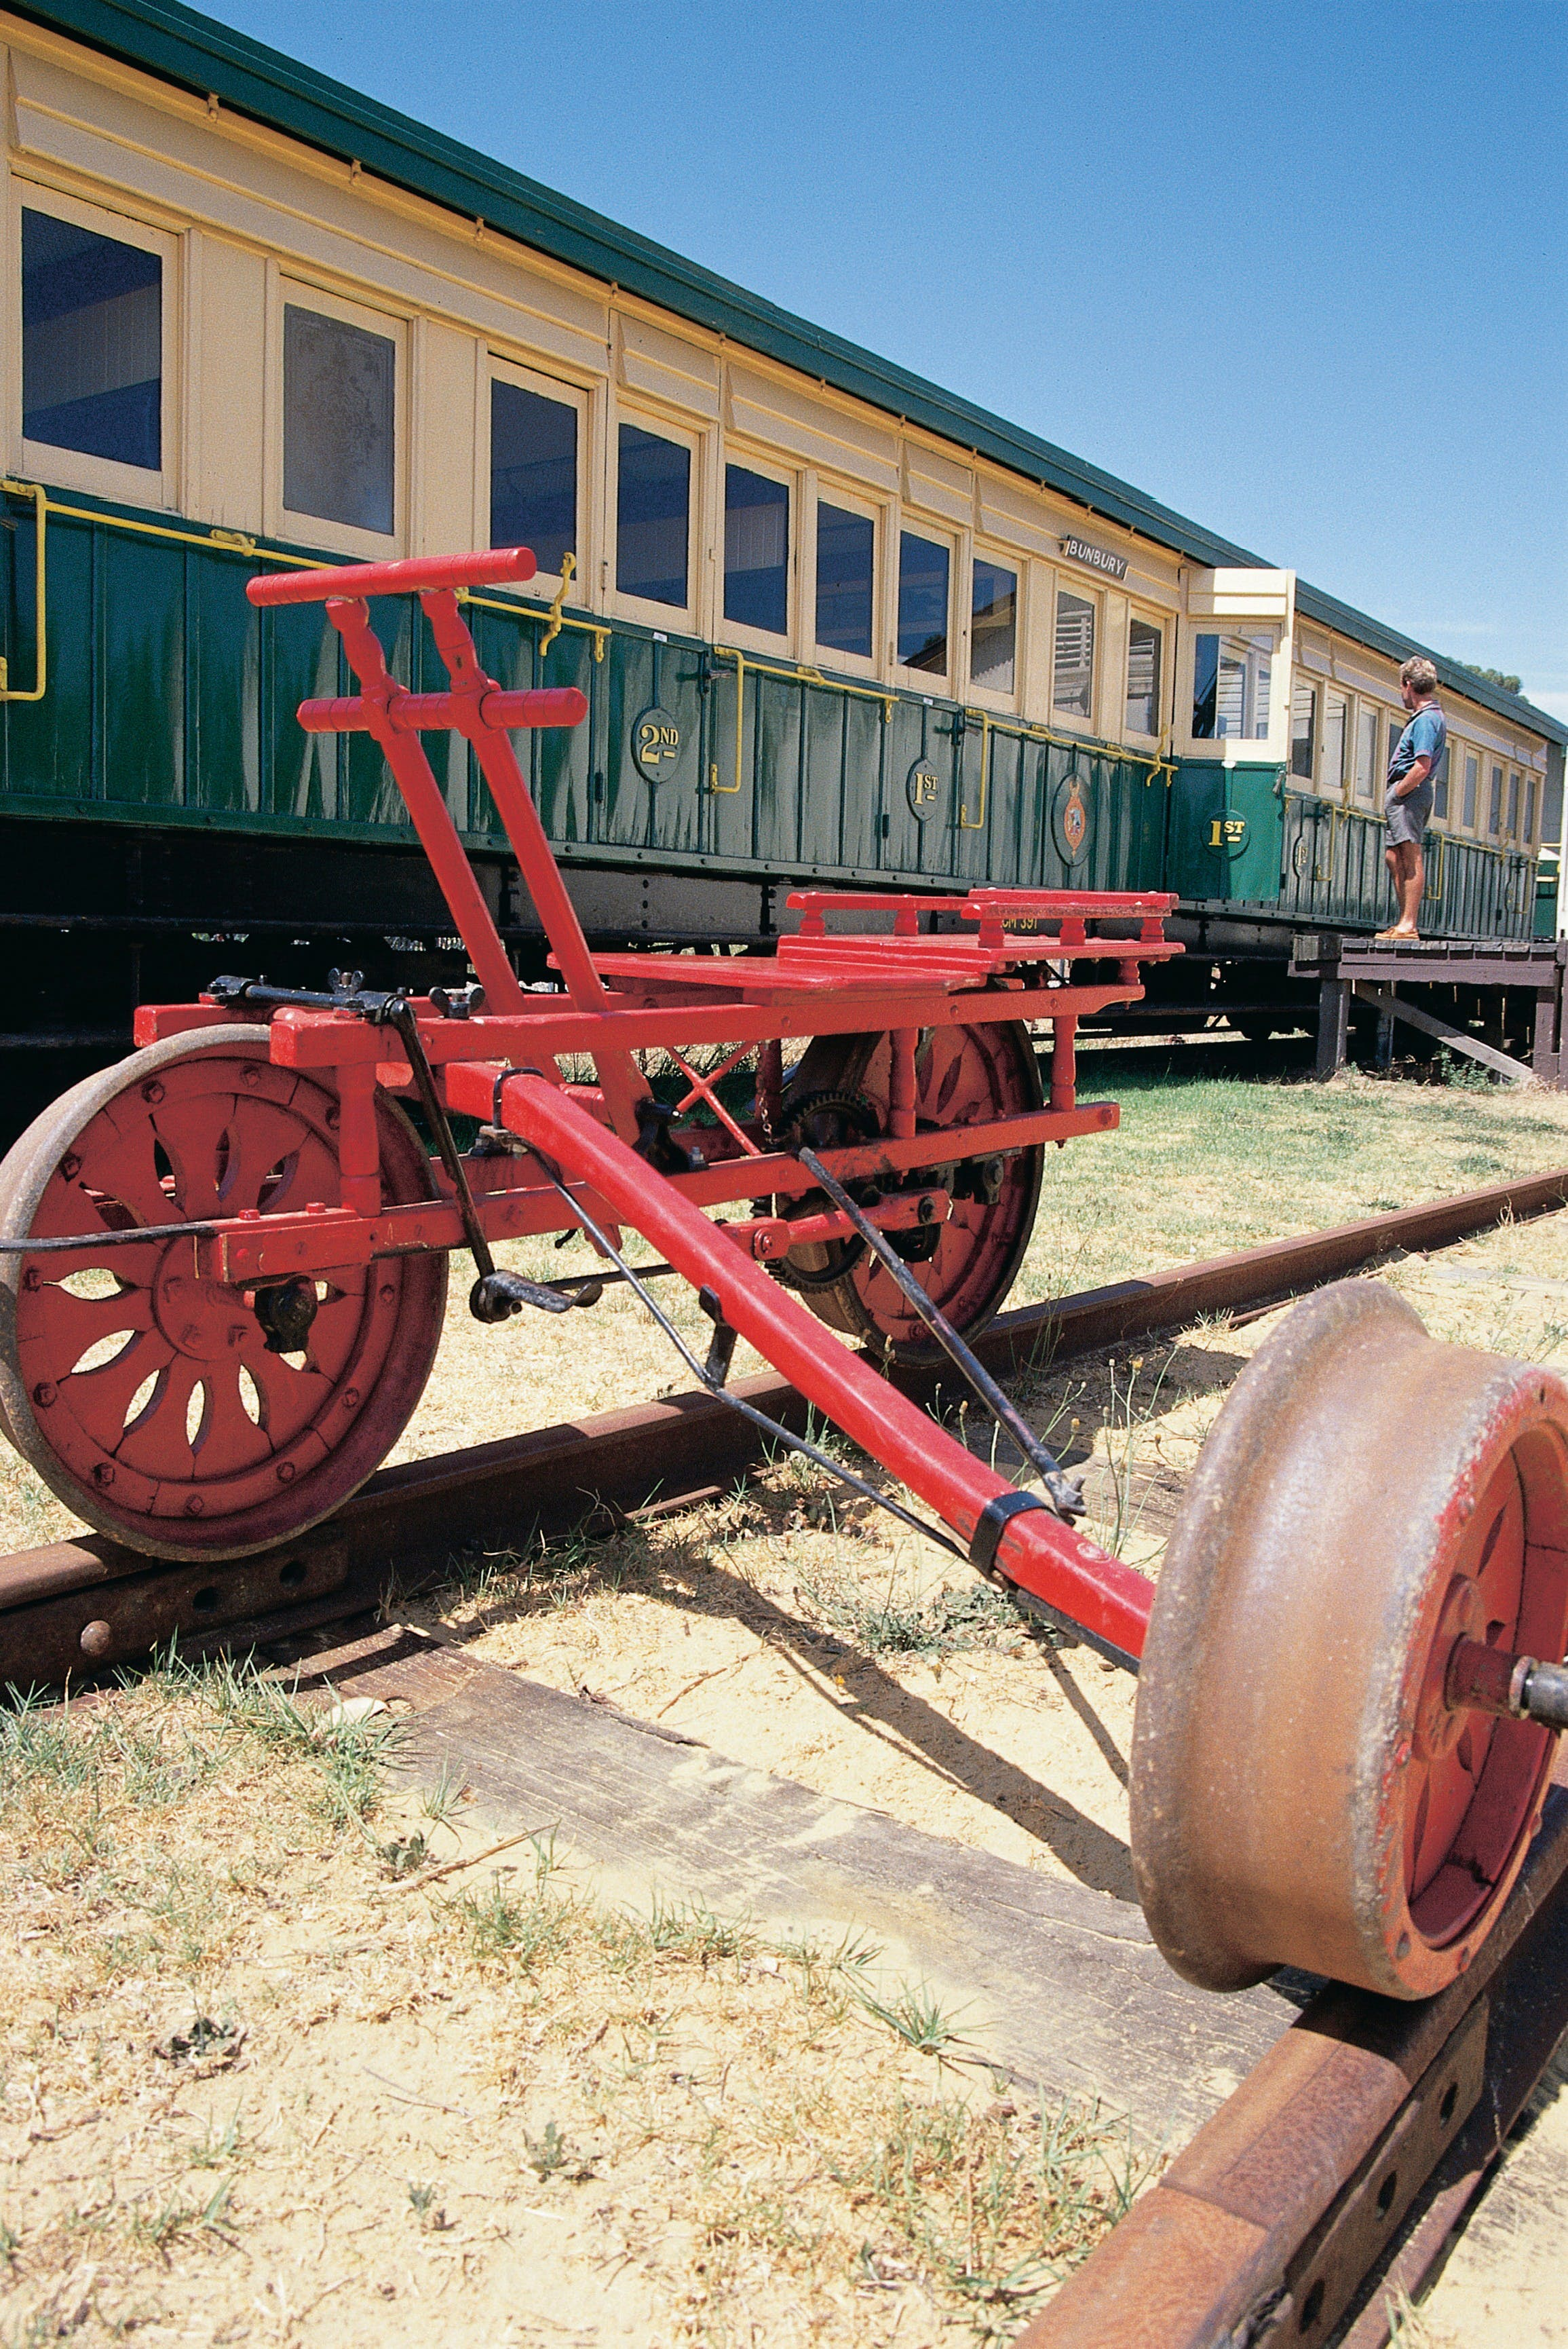 South West Rail and Heritage Centre, Boyanup, Western Australia